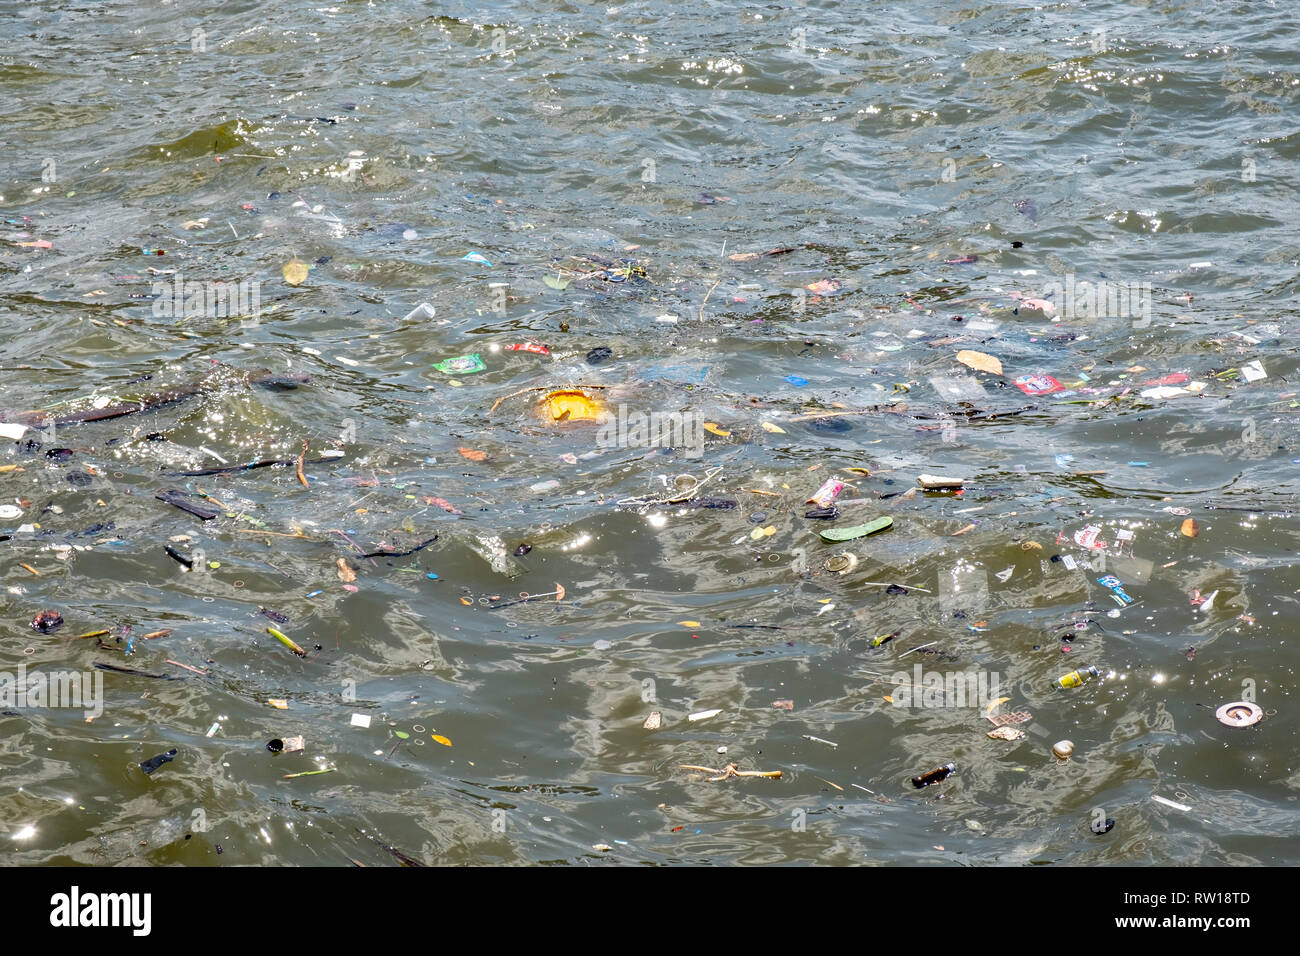 Polluted river in Thailand, Bangkok - Stock Image